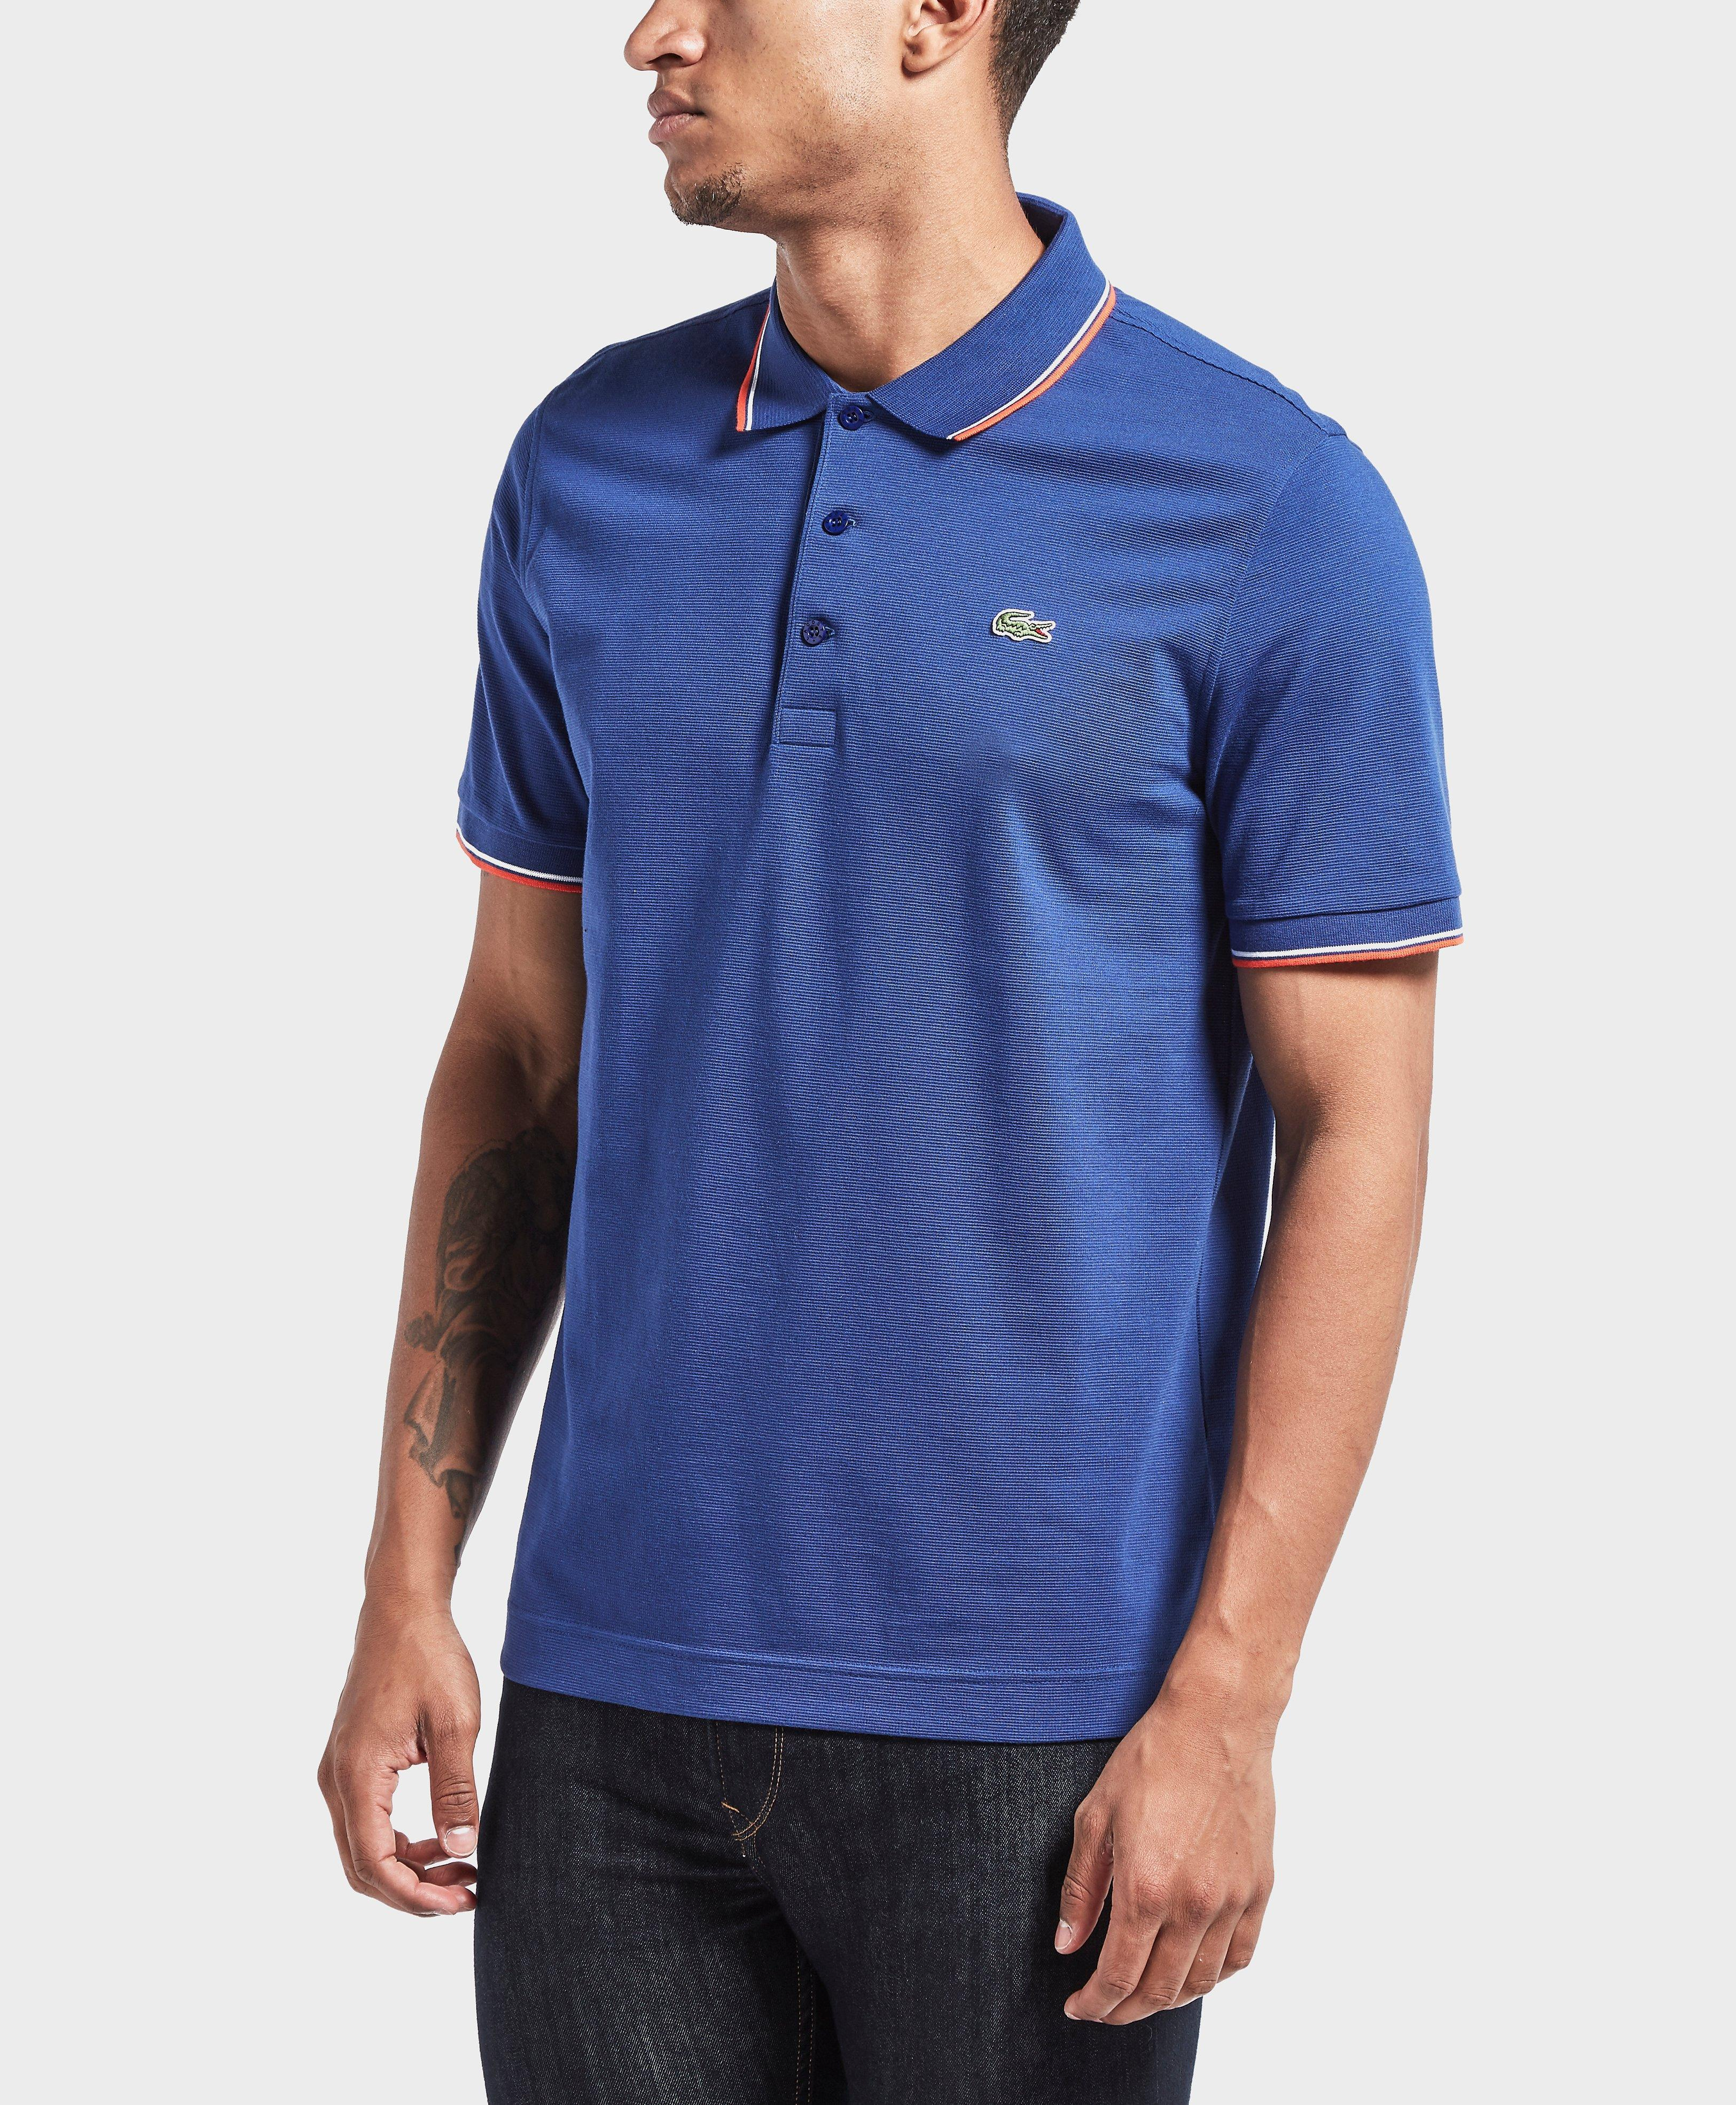 Lacoste tipped short sleeve polo shirt in blue for men lyst for Short sleeve lacoste shirt